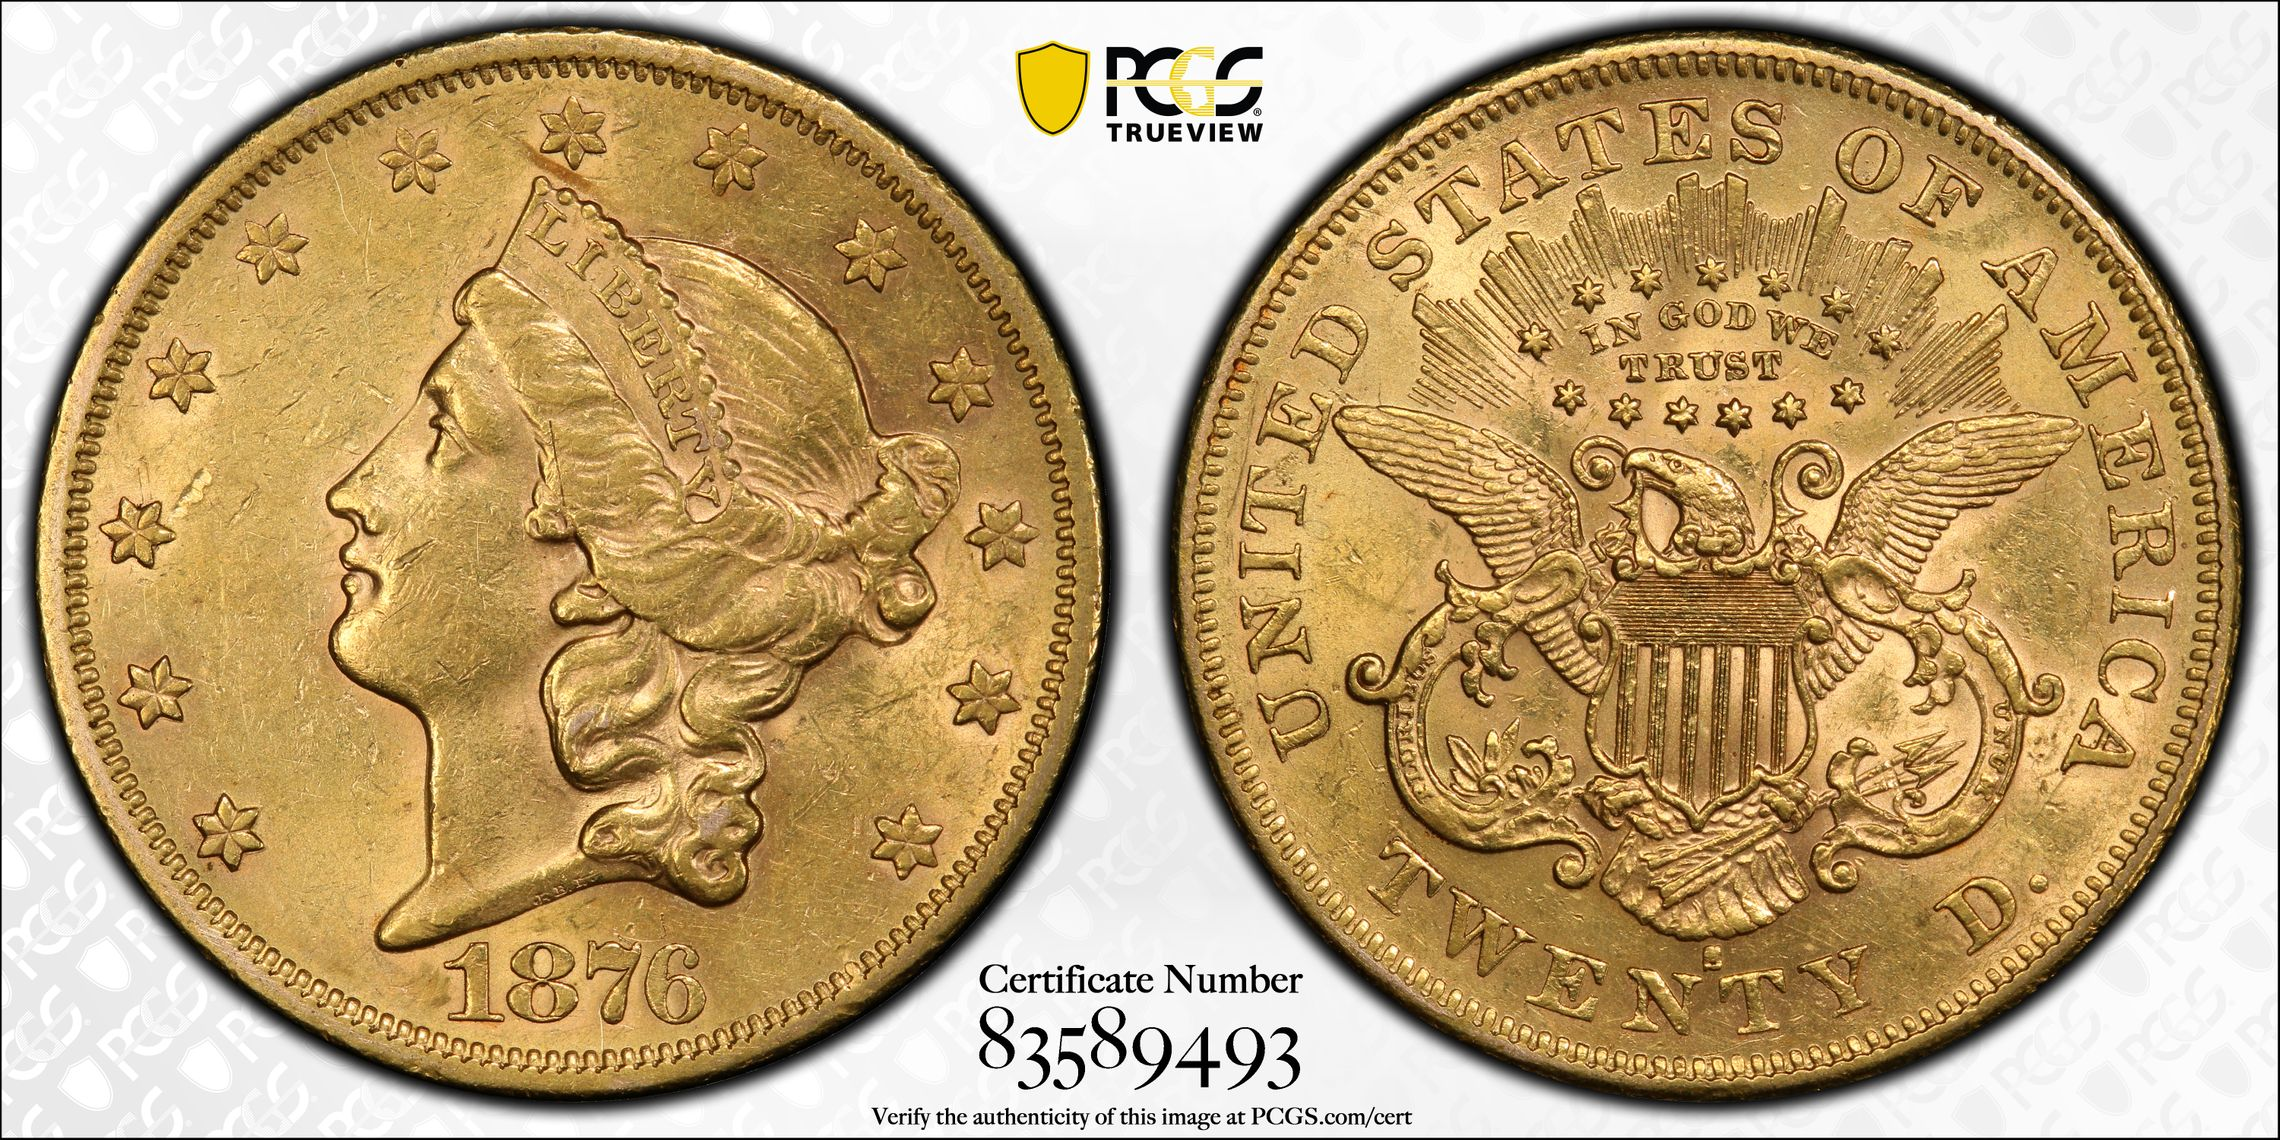 GFRC Open Set Registry - Alexandria 1866 - 1876 Gold Liberty G$20